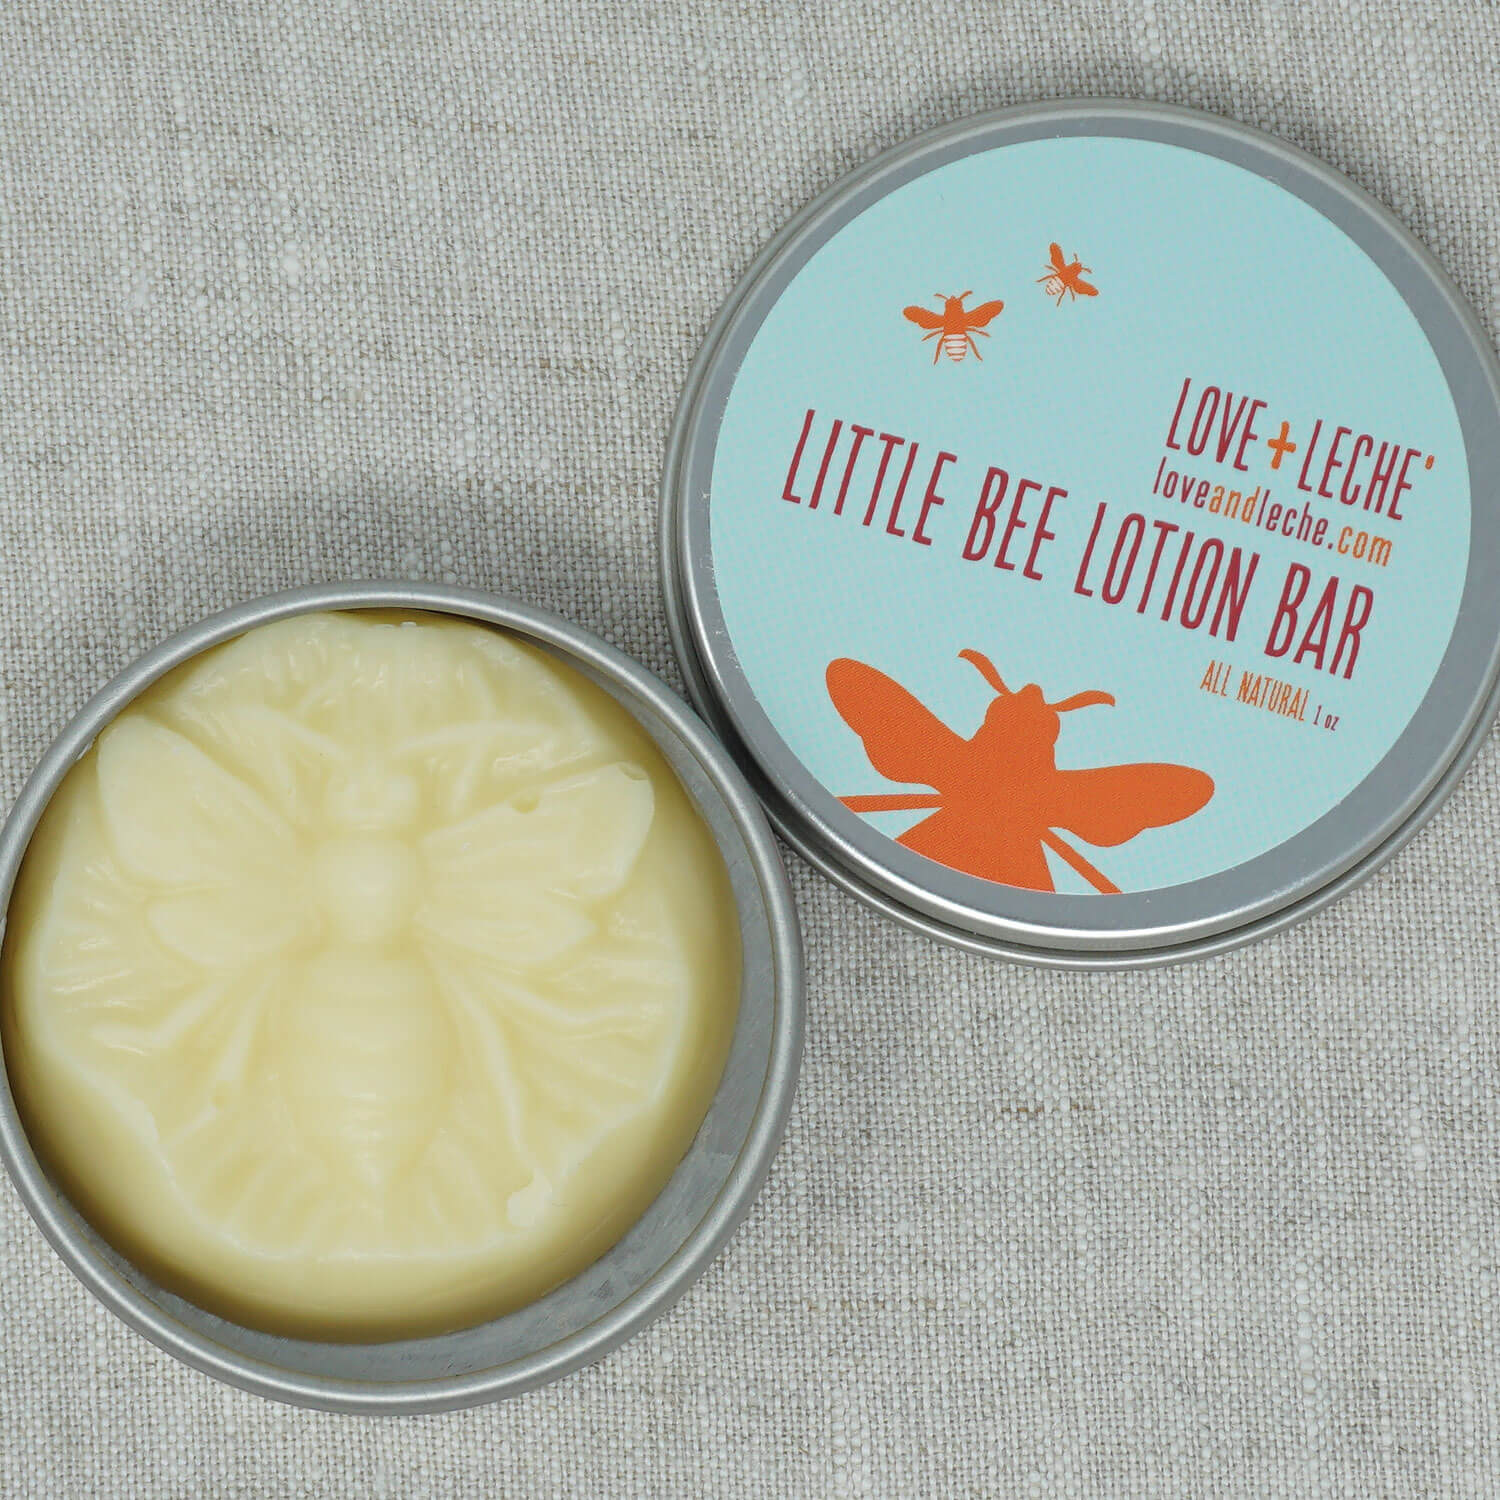 Love + Leche Little Bee Lotion Bar - Natural | Yarn Worx